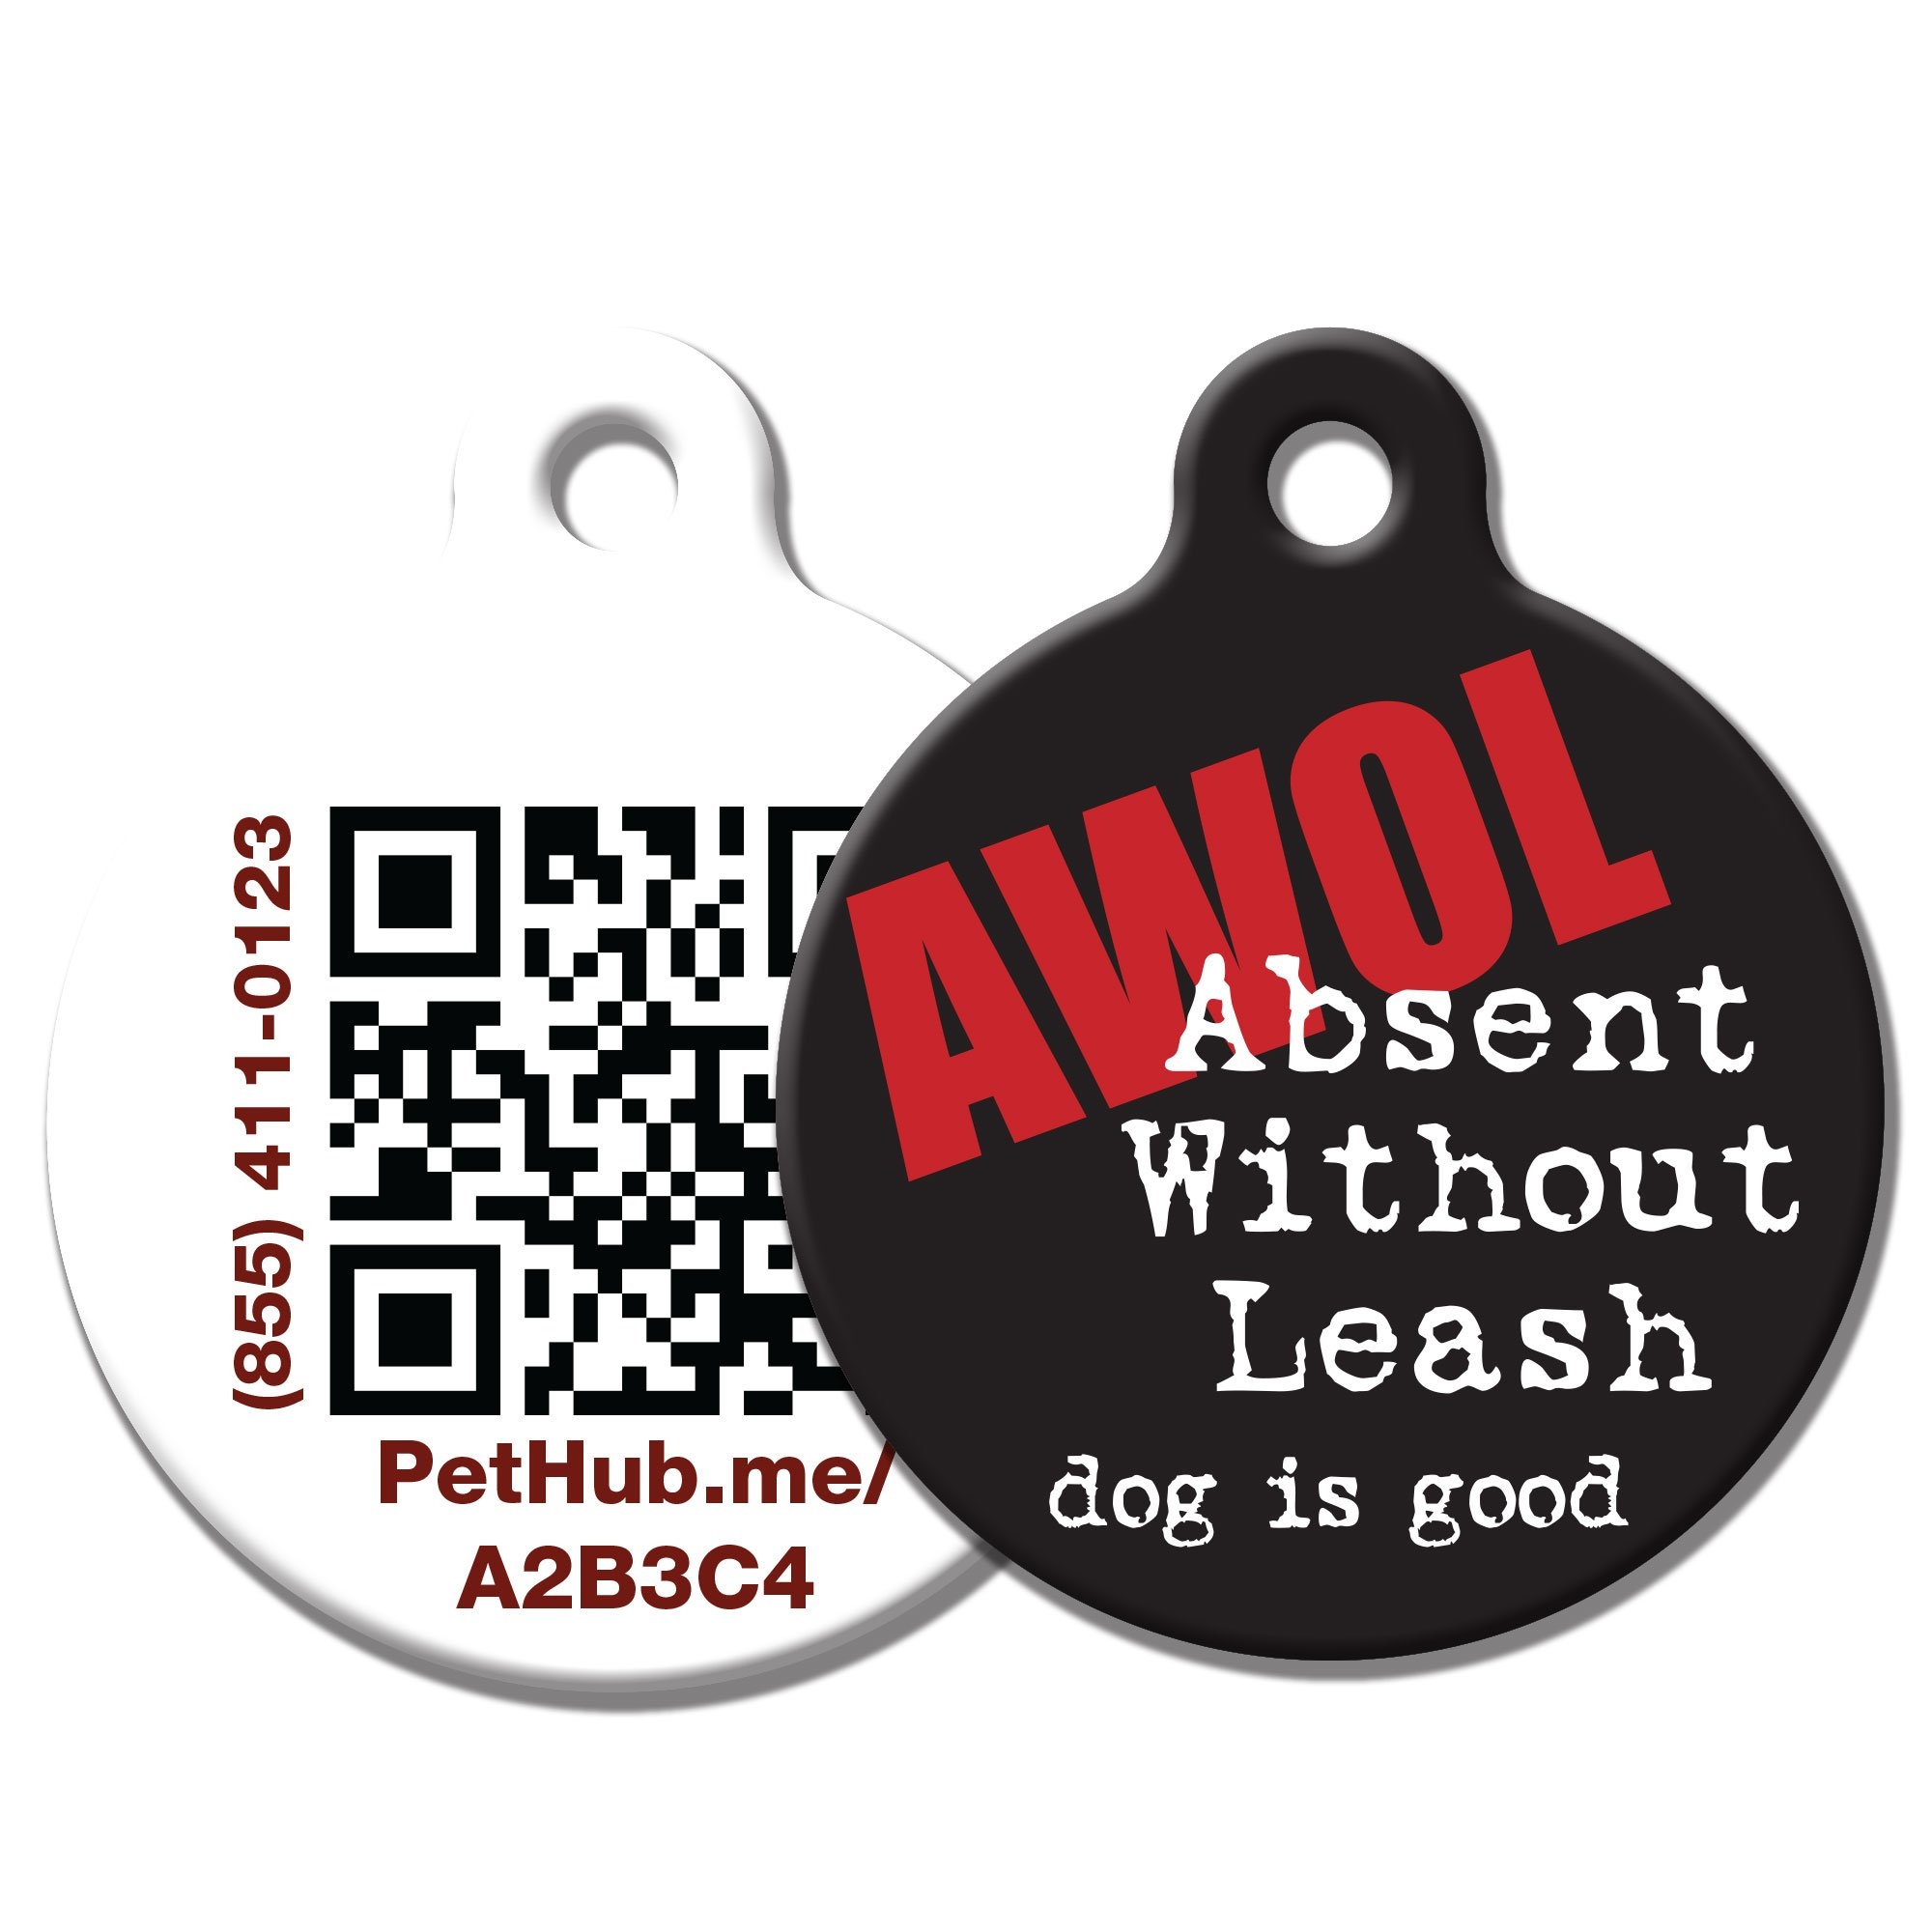 PetHub Recycled Steel Pet ID Tag, AWOL